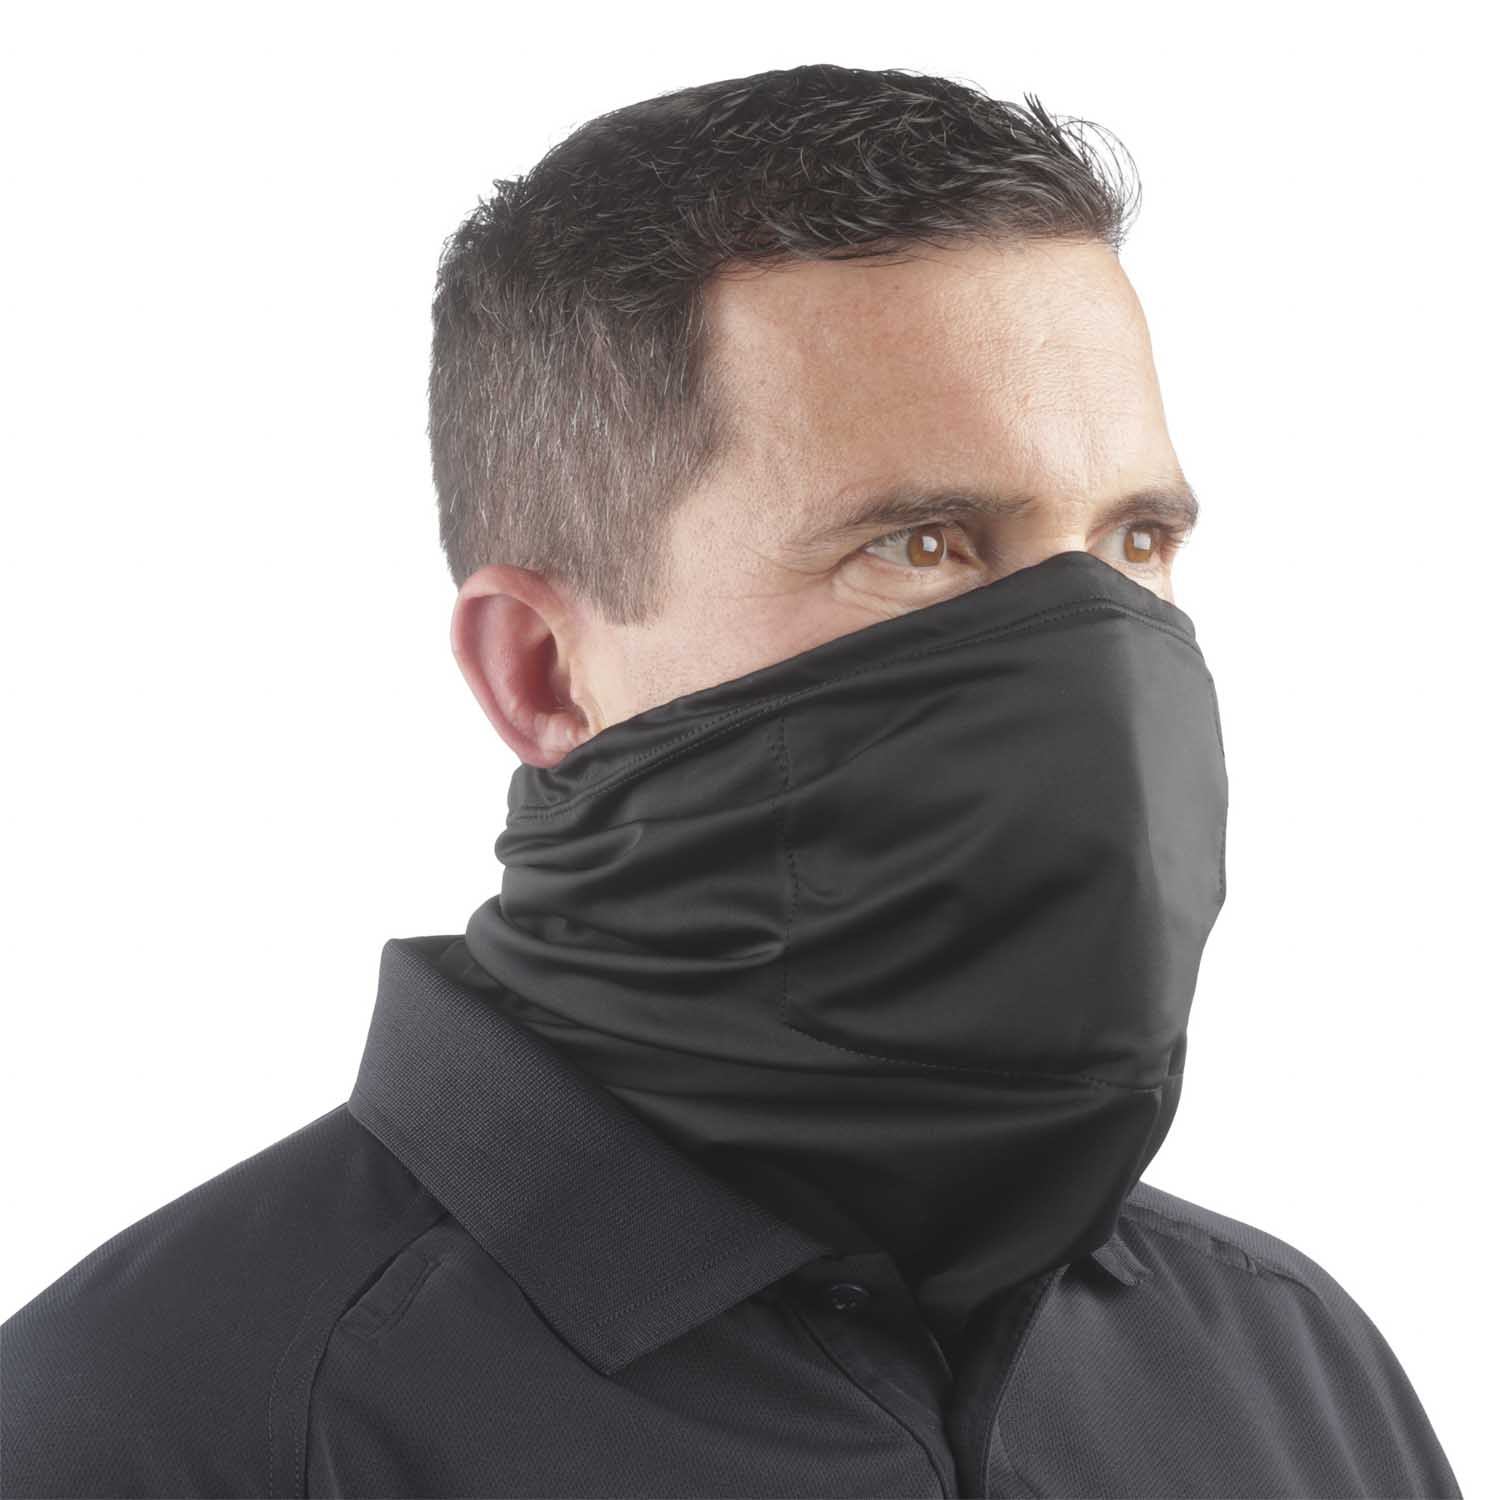 Galls G-Shield Neck Gaiter (2 Pieces)